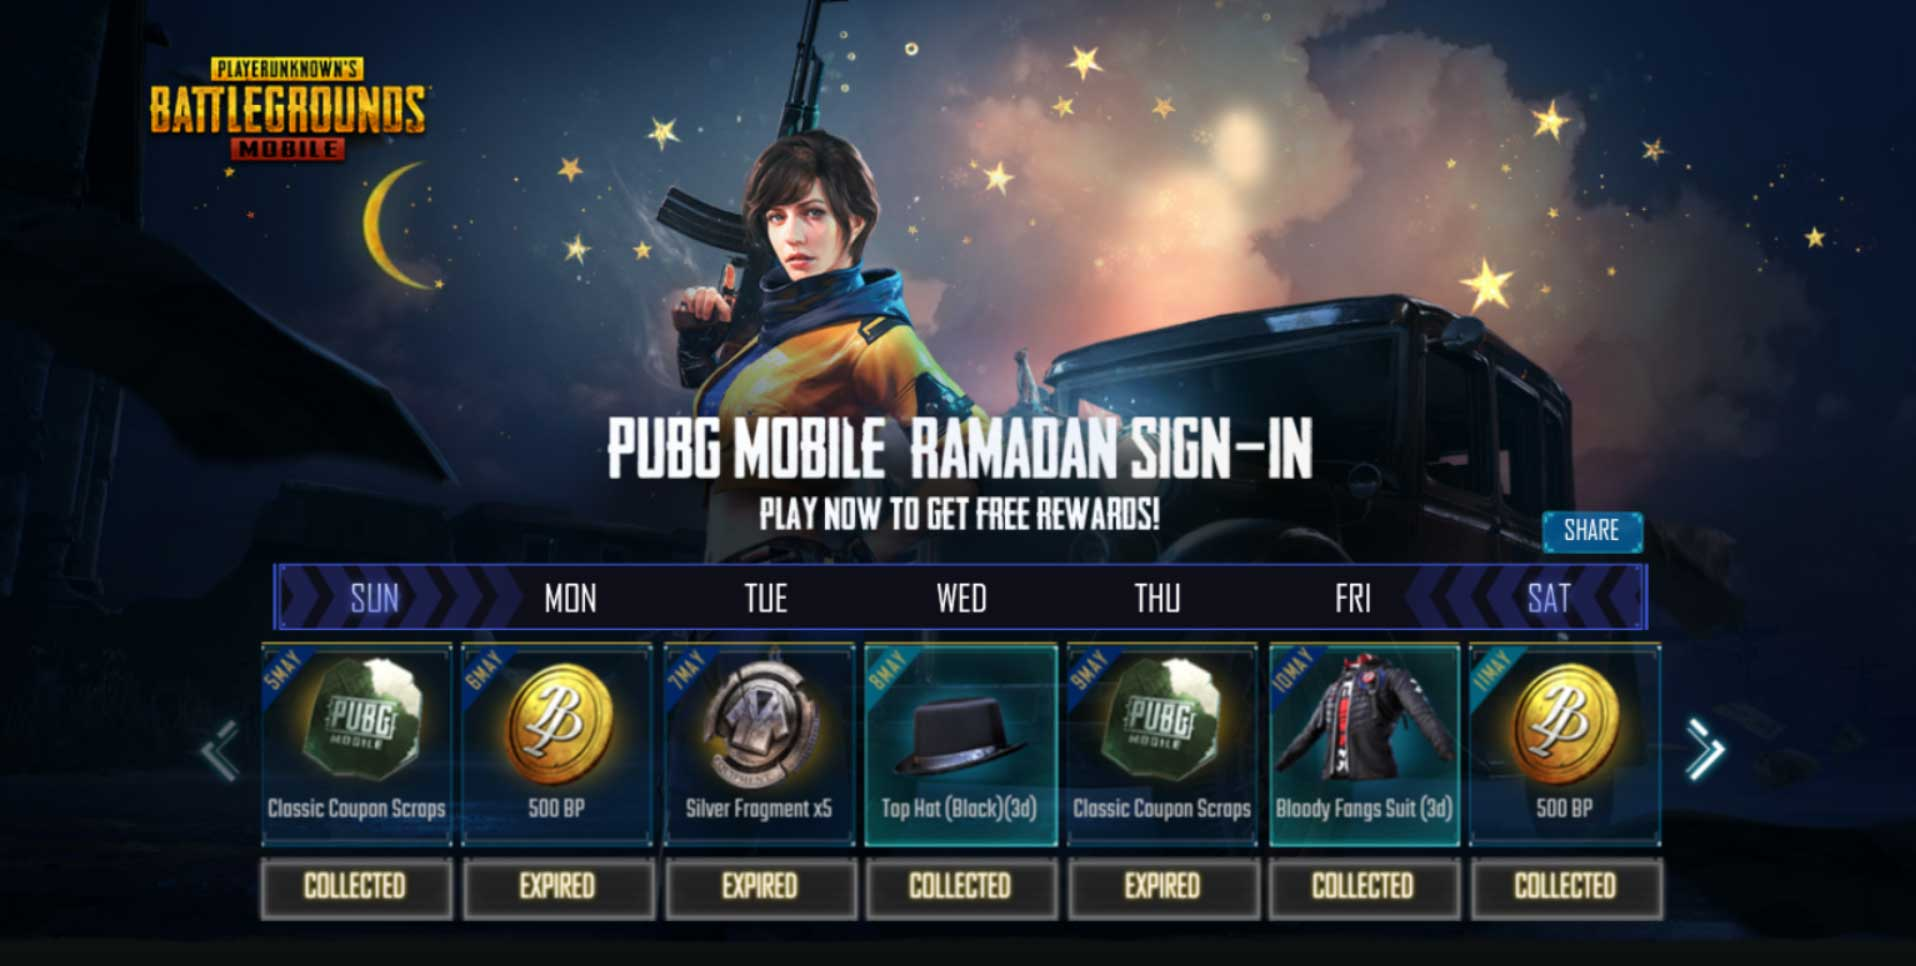 PUBG Ramadan Rewards - Mortal Tech